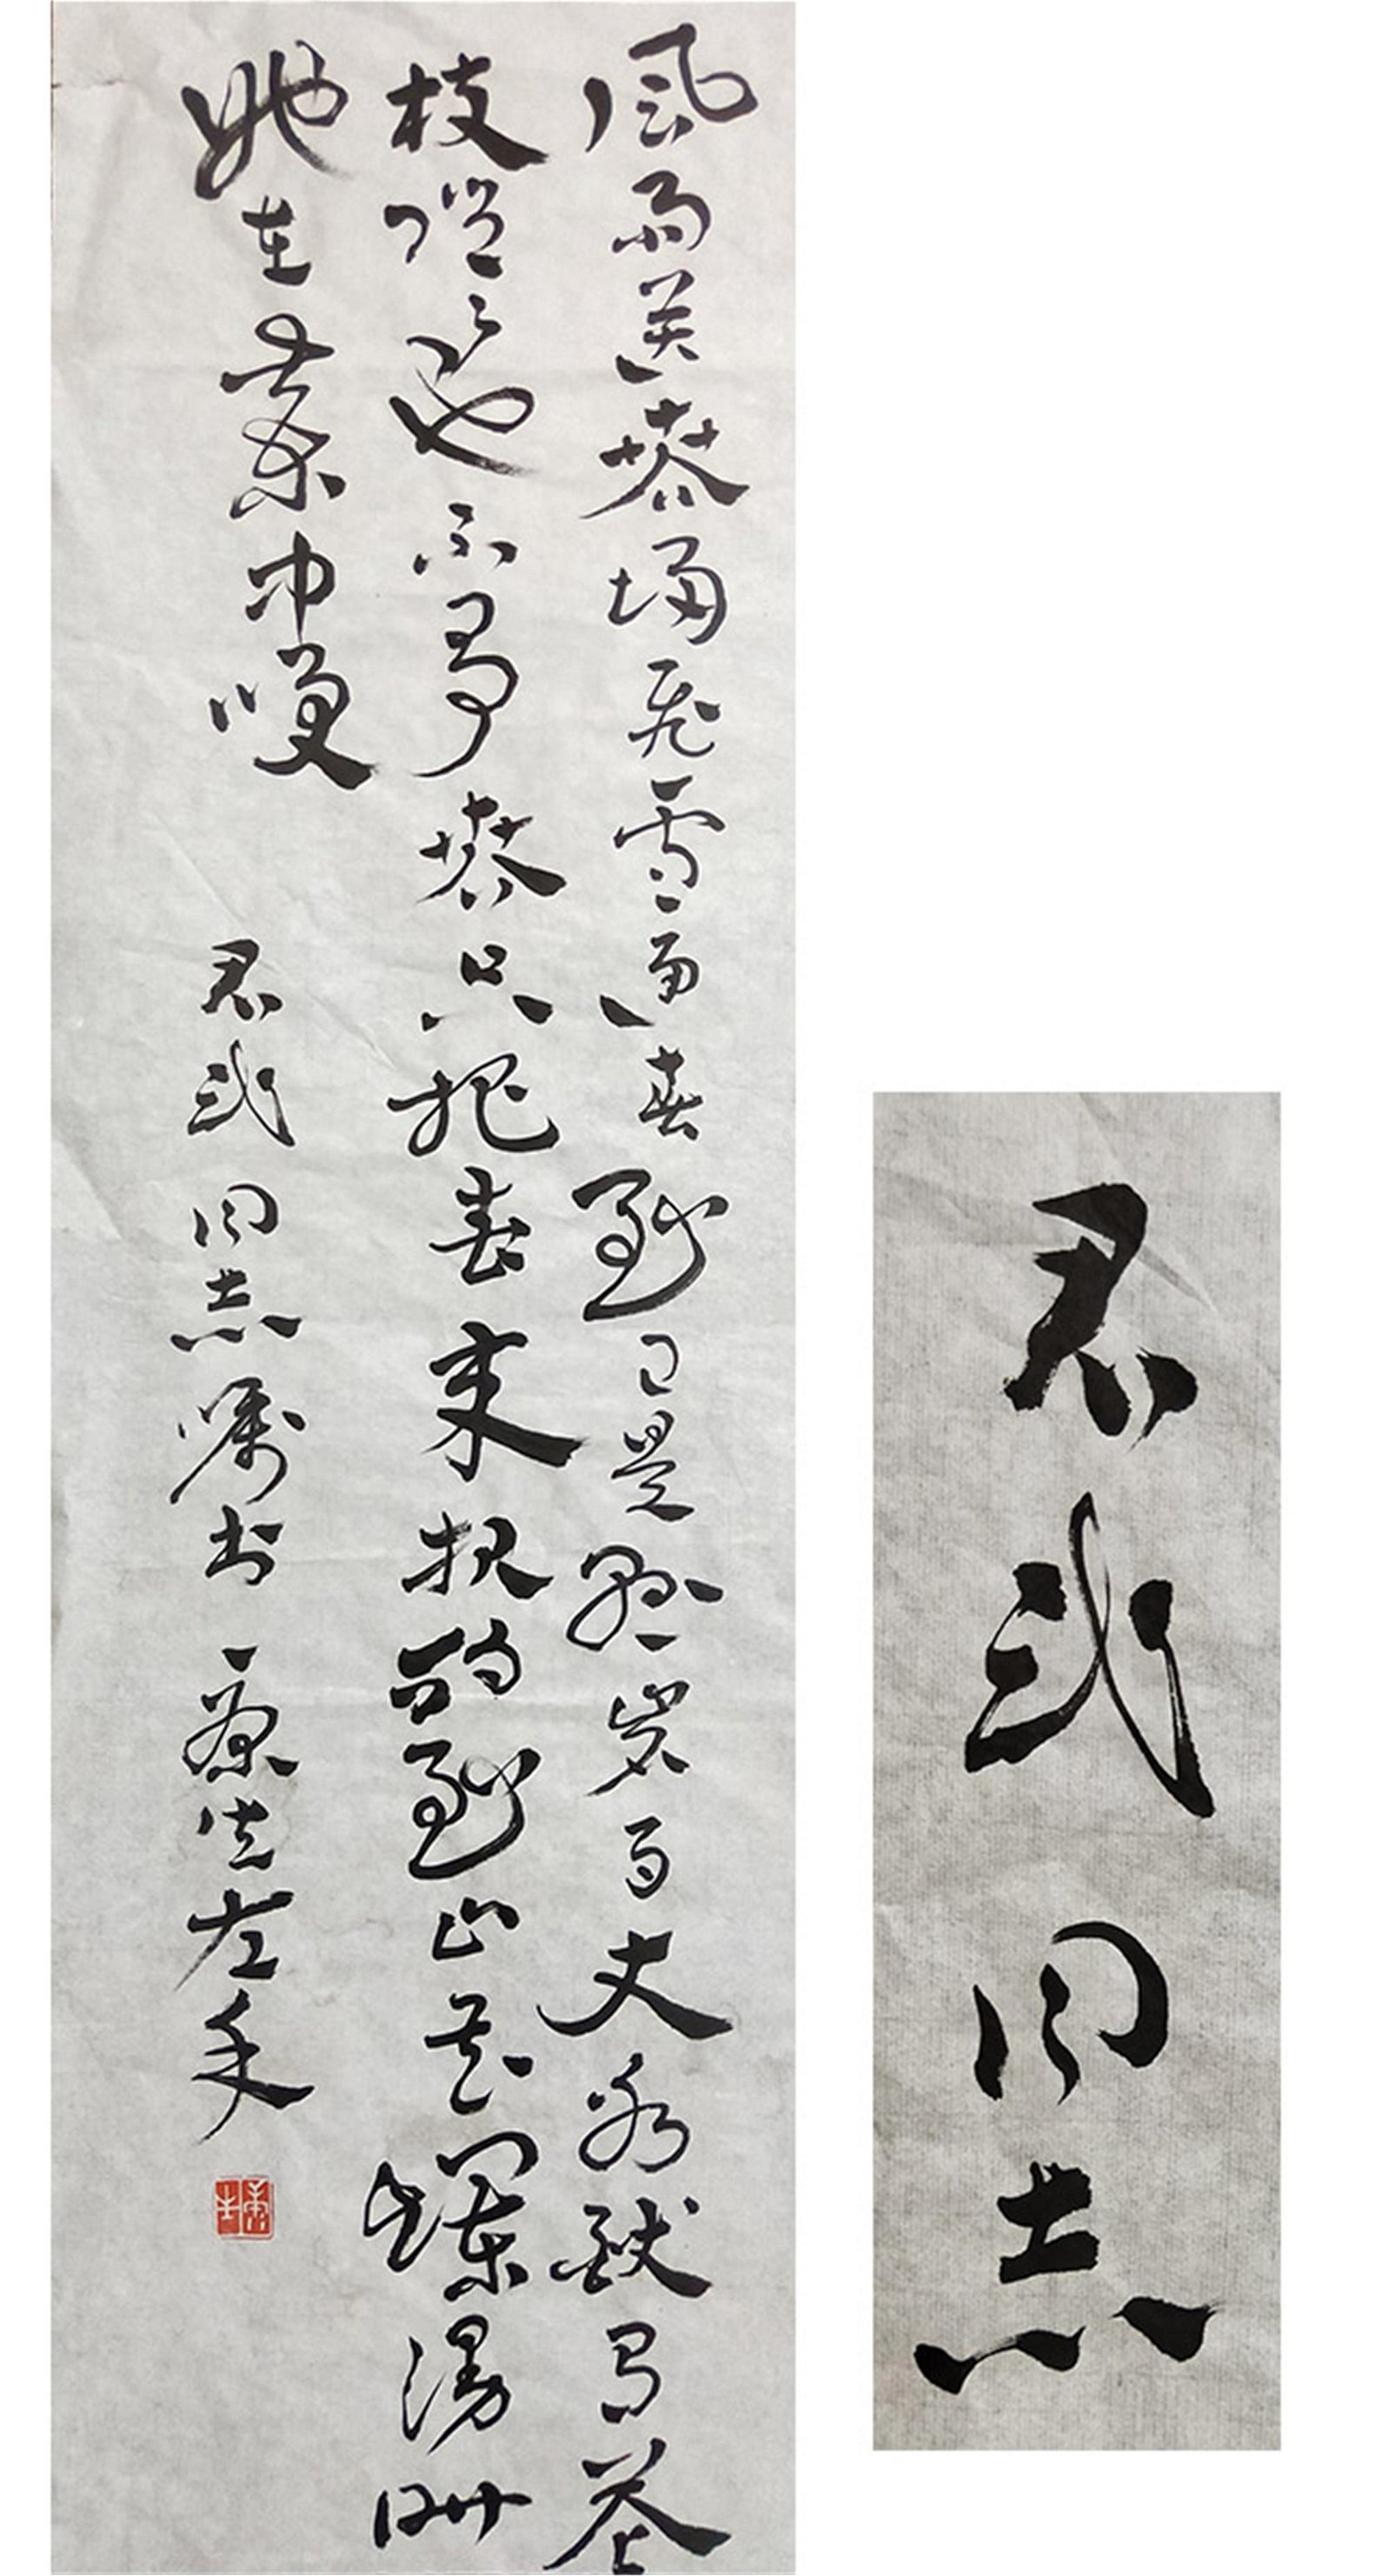 CHINESE SCROLL CALLIGRAPHY ON PAPER GIFT TO SAME